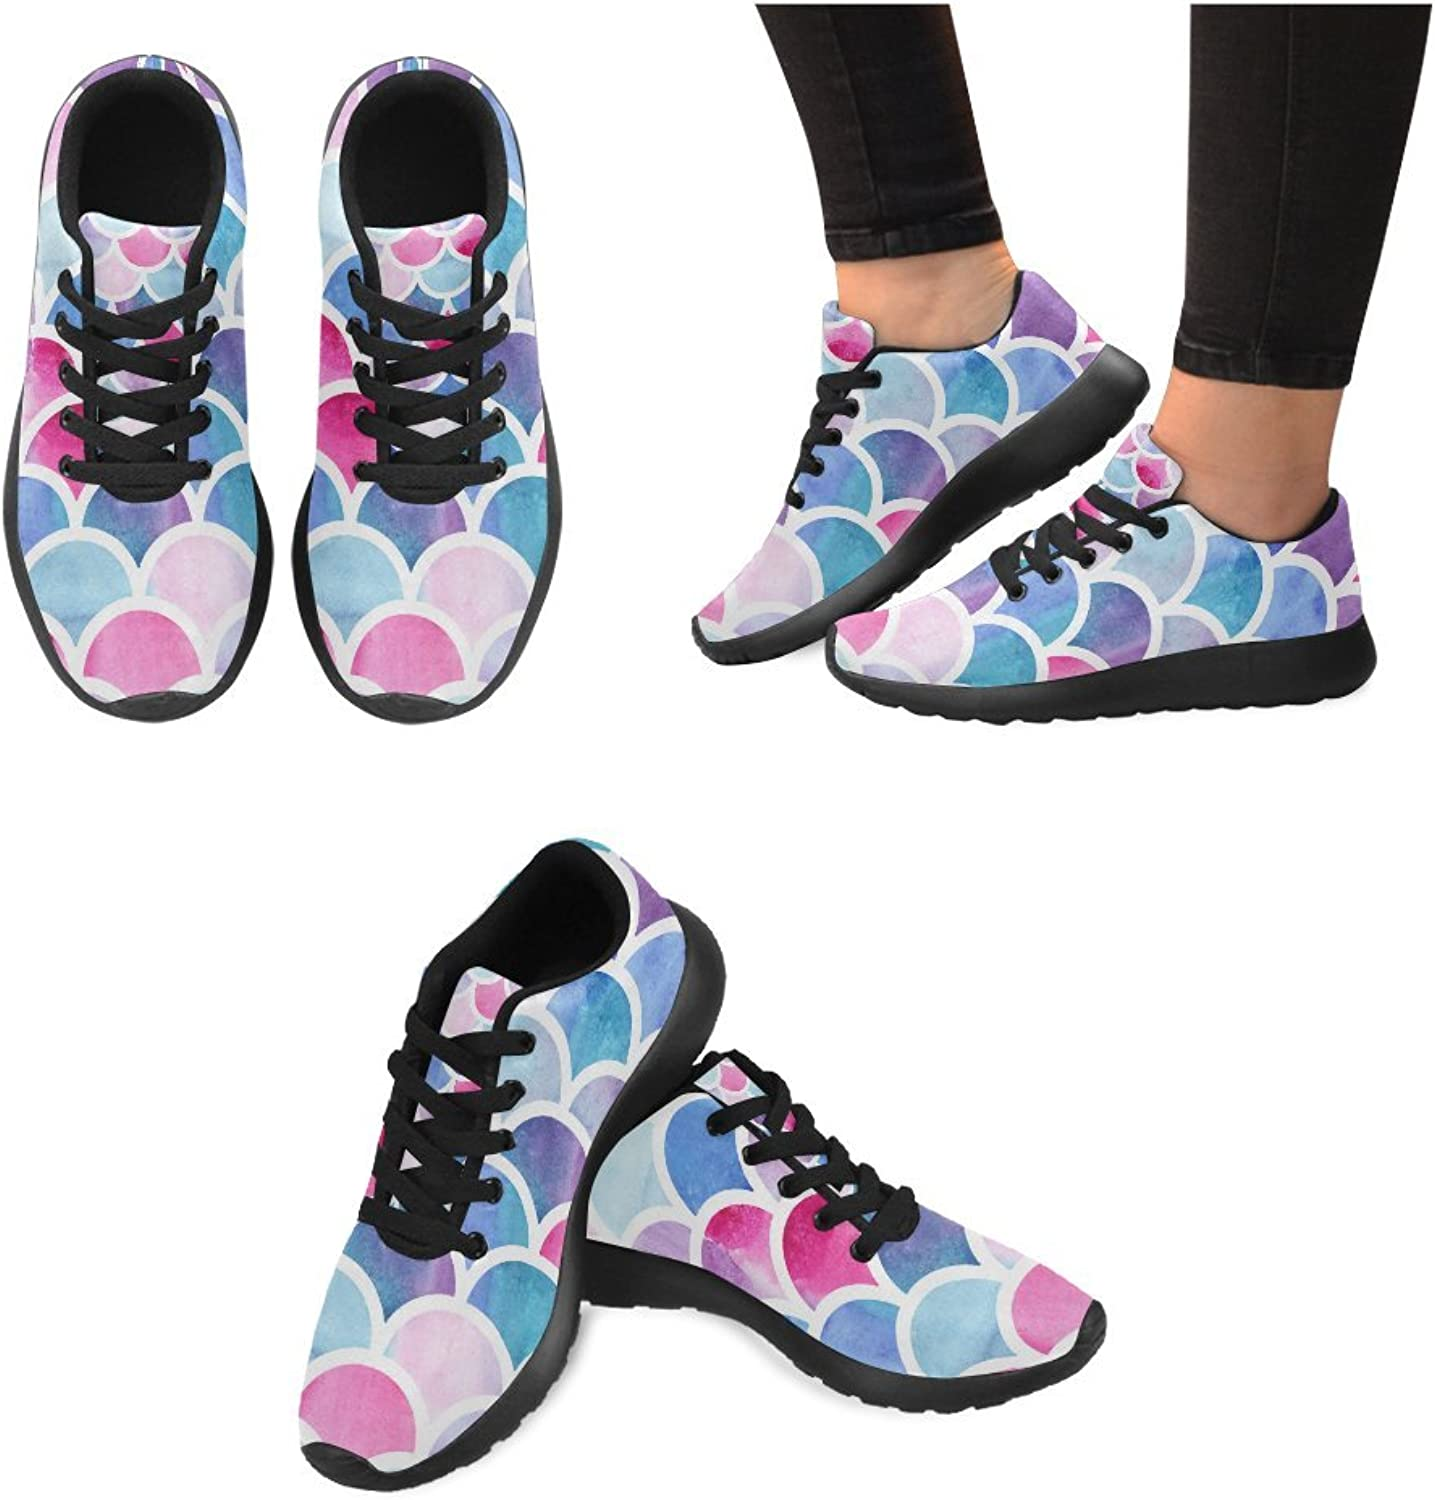 InterestPrint Women's Jogging Running shoes Classic Canvas Sneakers Music Notes